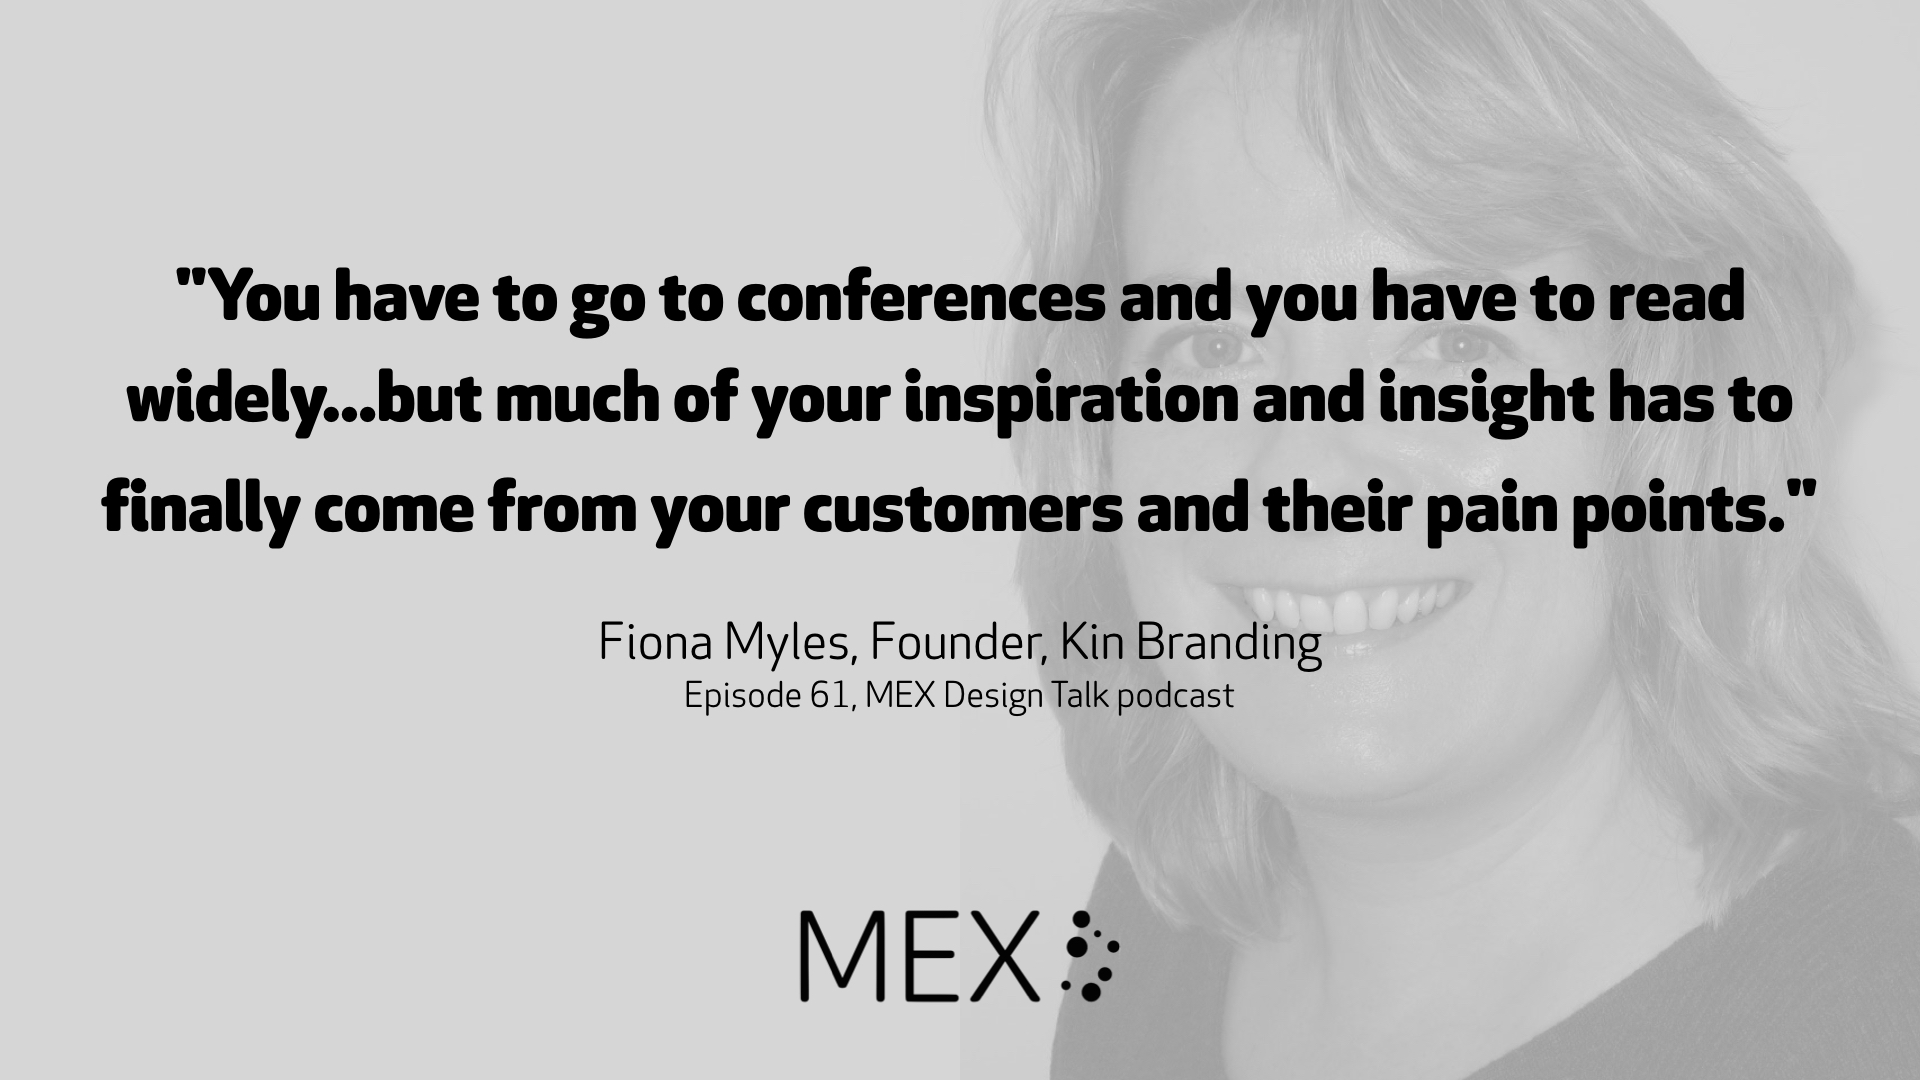 """""""You have to go to conferences and you have to read widely...but much of your inspiration and insight has to finally come from your customers and their pain points.""""  Fiona Myles, Founder, Kin Branding Episode 61, MEX Design Talk podcast"""